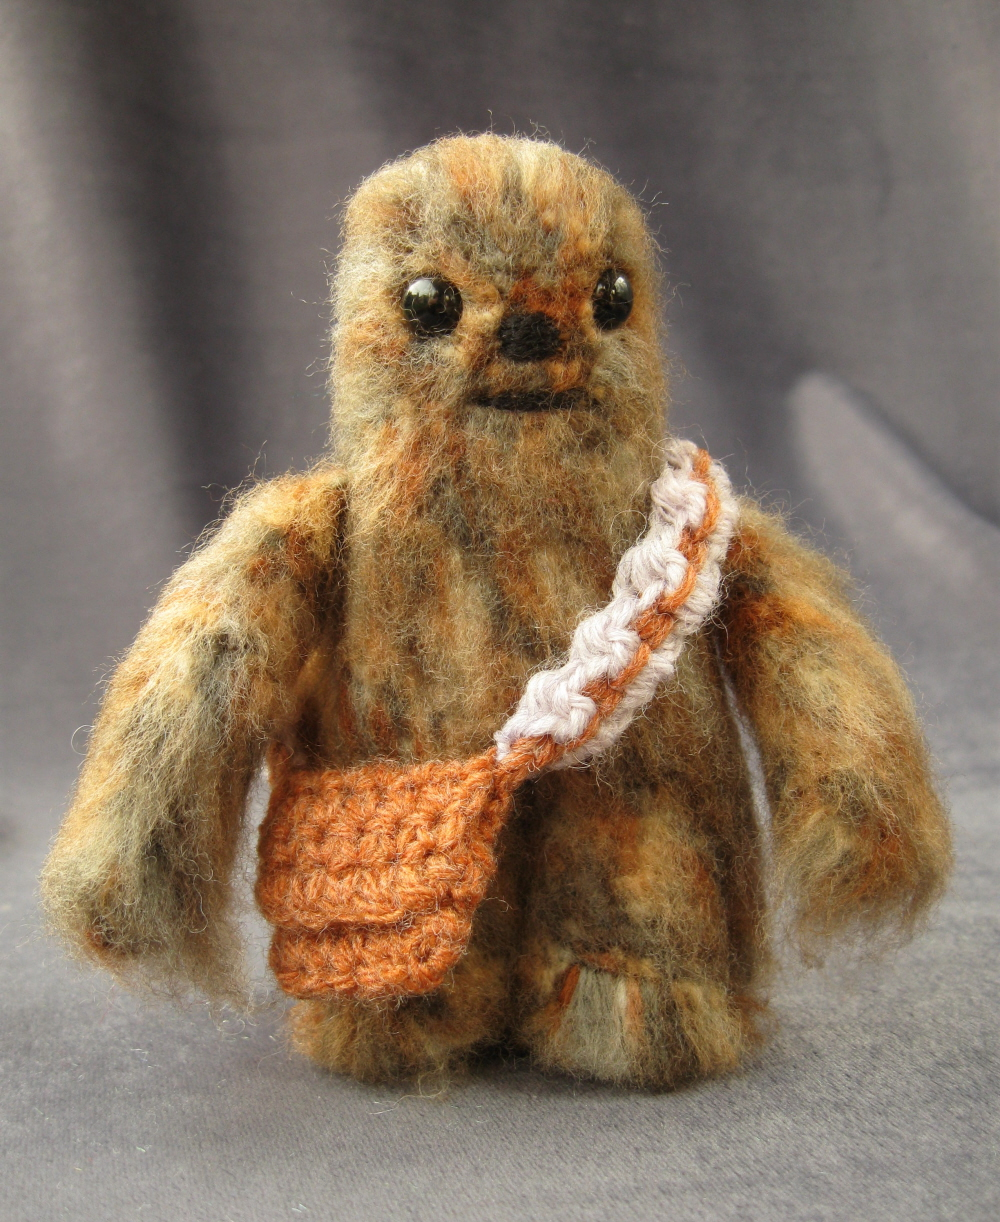 Amigurumi Chewbacca by LucyRavenscar / All Rights Reserved